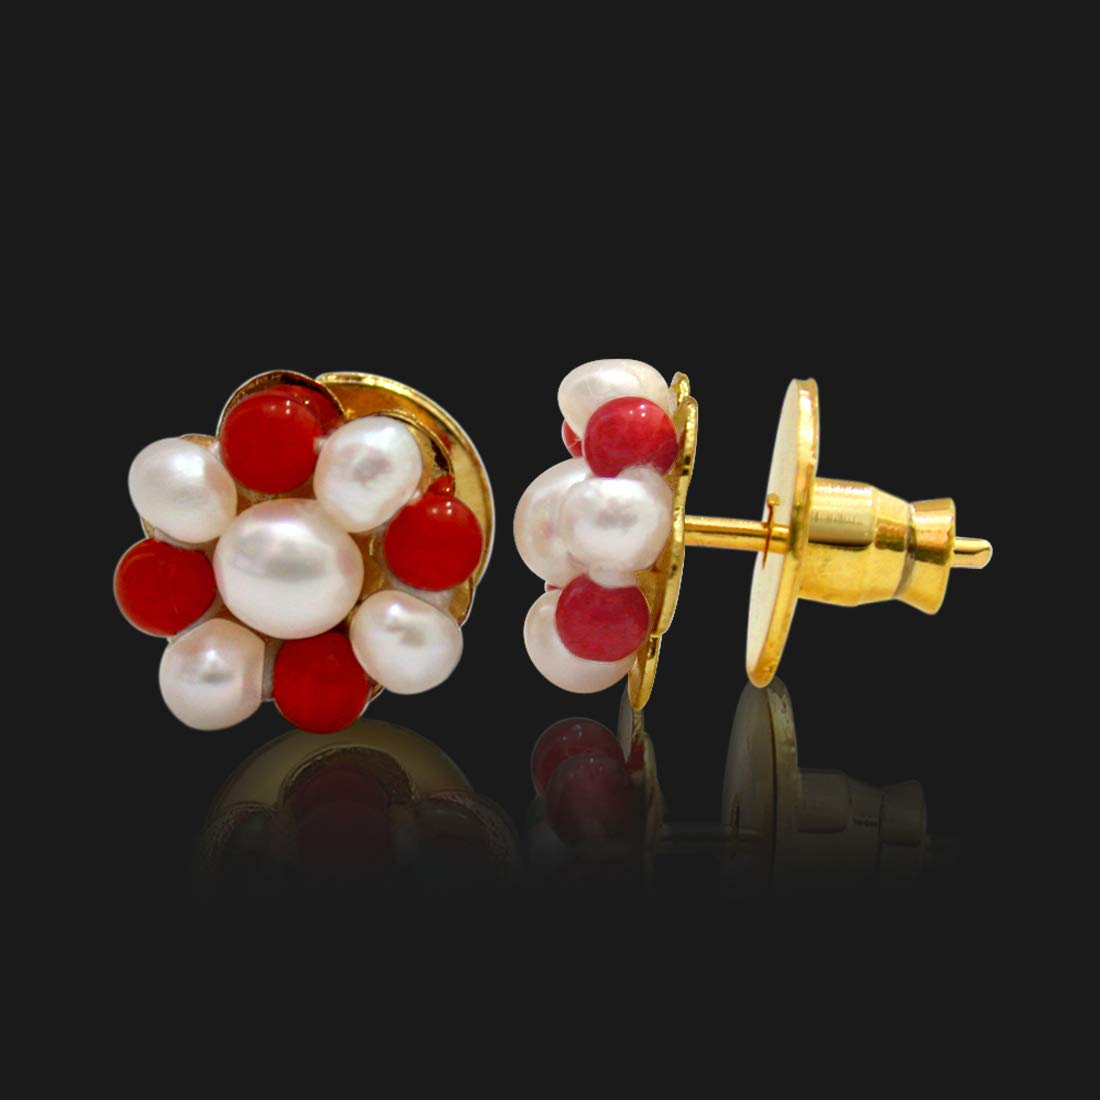 Real Freshwater Pearl & Red Coral Beads Kuda Jodi Earrings for Women (SE109)